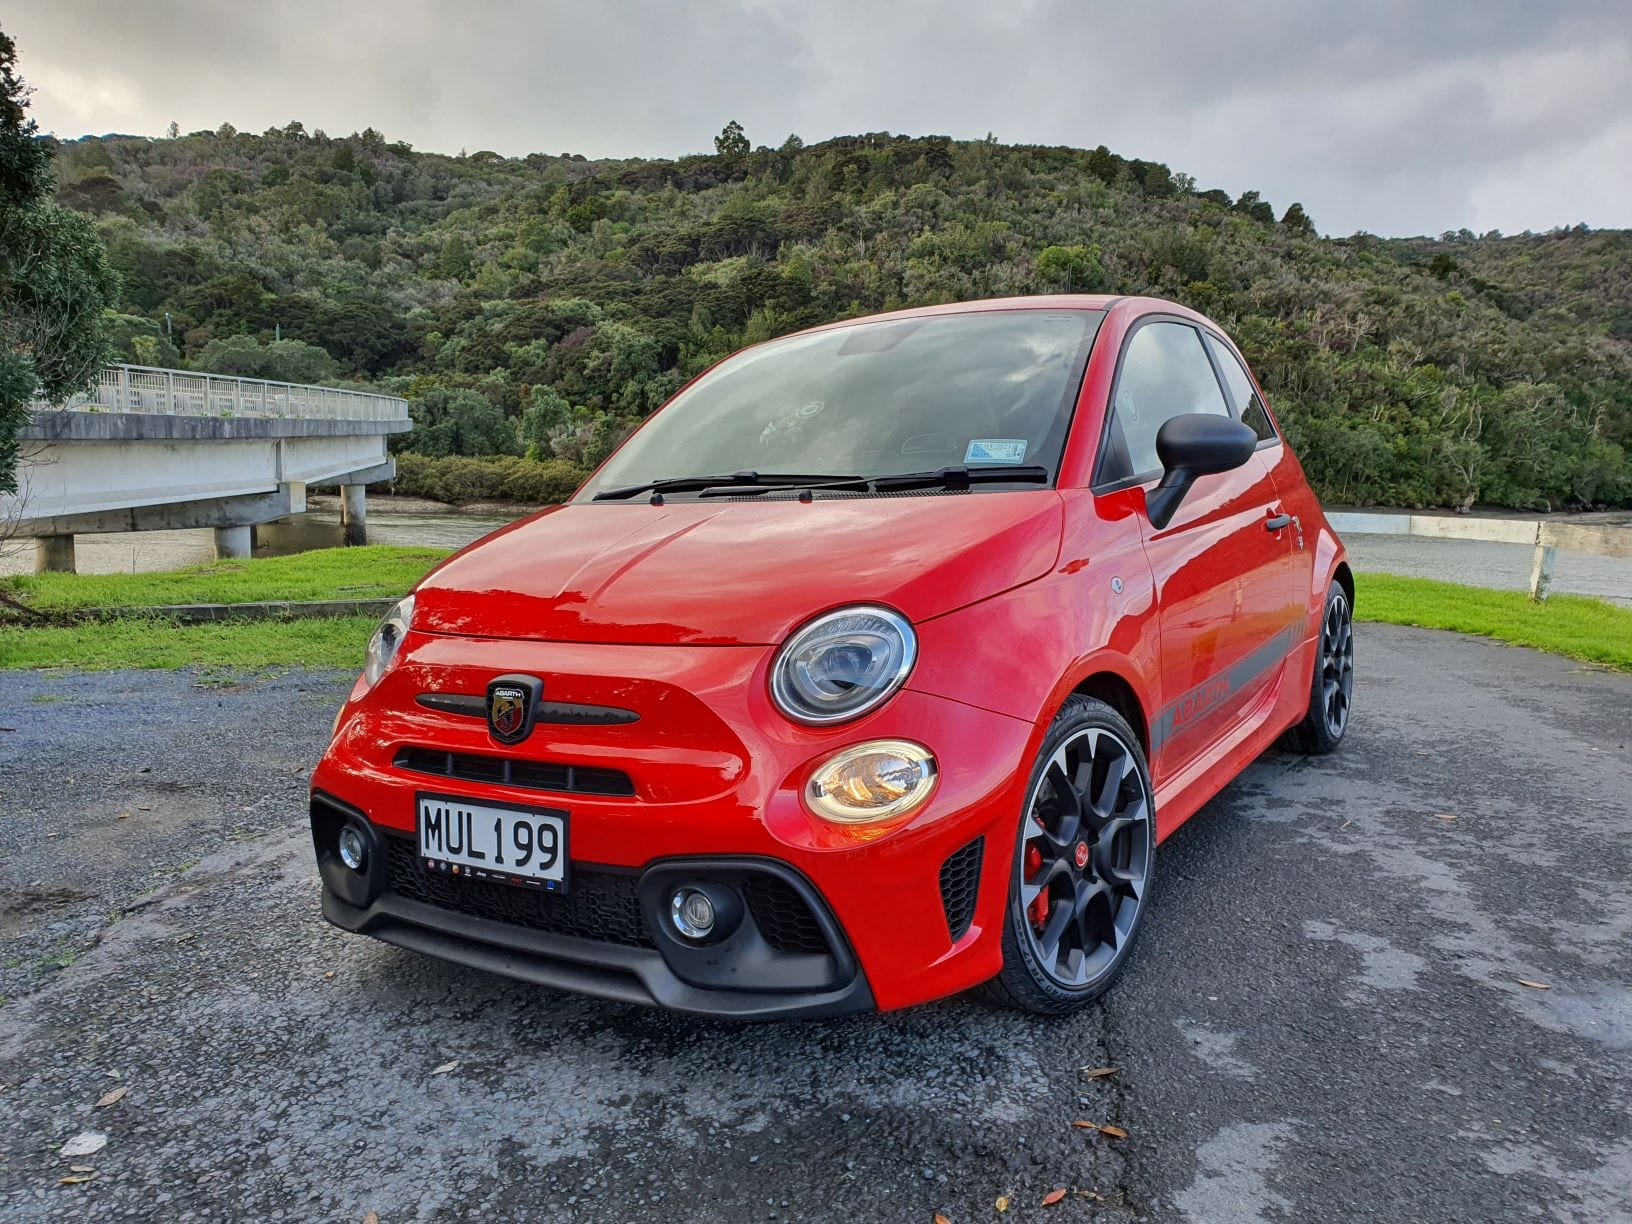 The Abarth 595 by the water